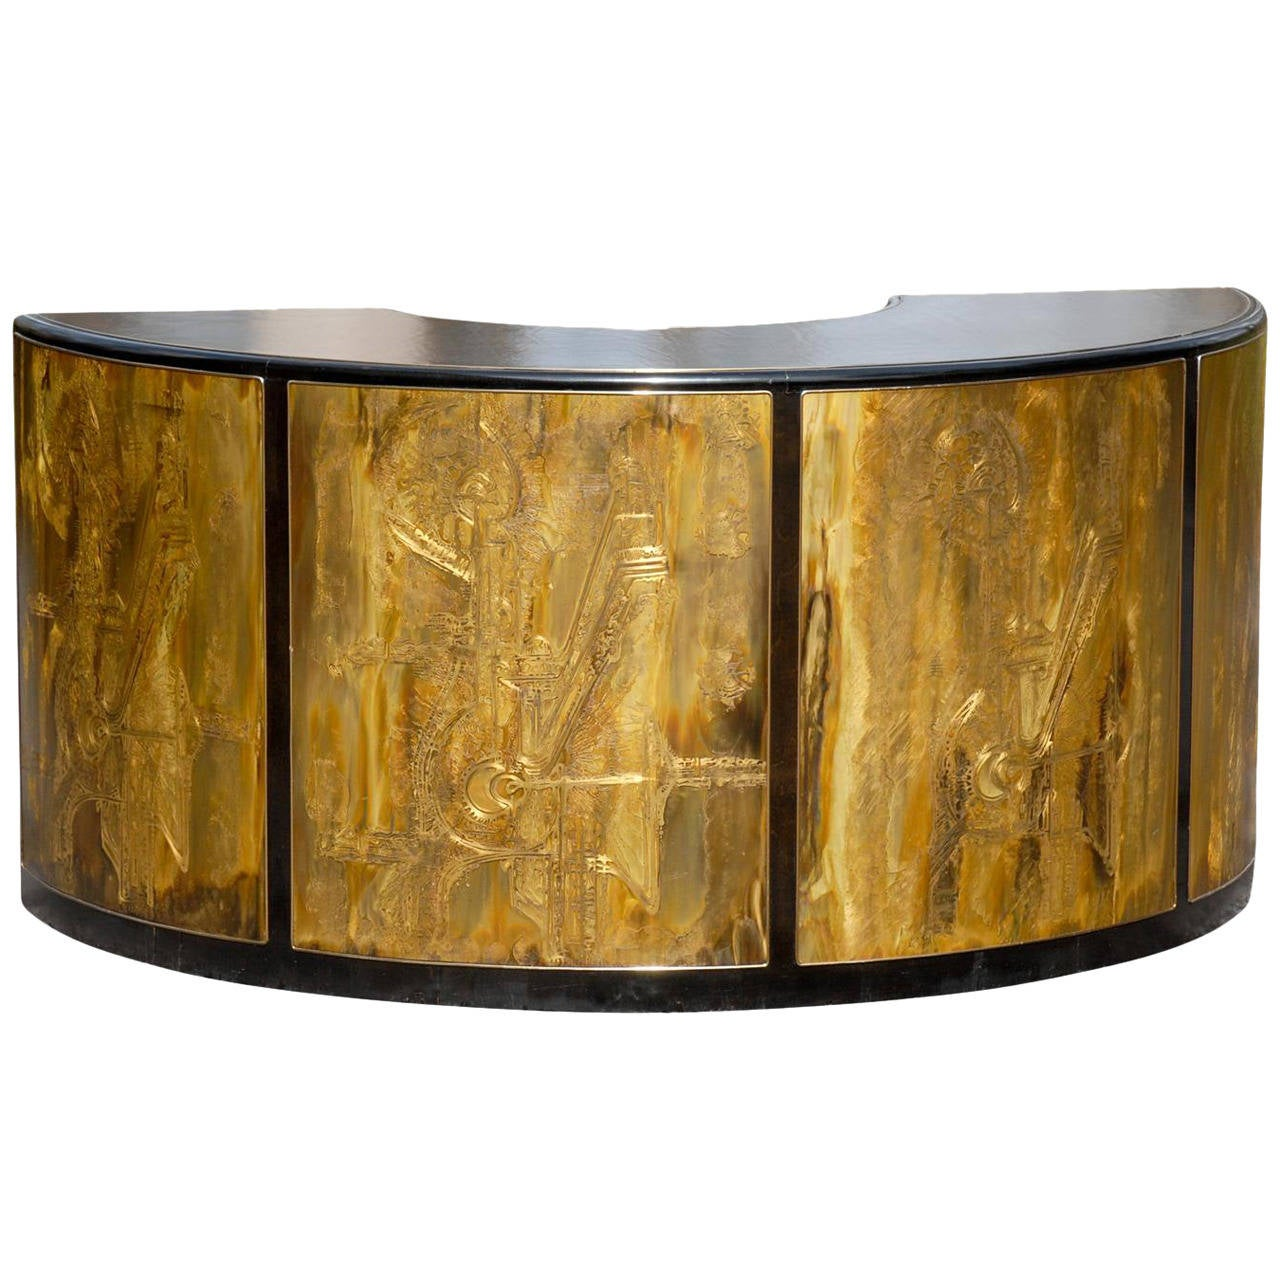 Mesmerizing Bernard Rohne For Mastercraft Curved Desk Or